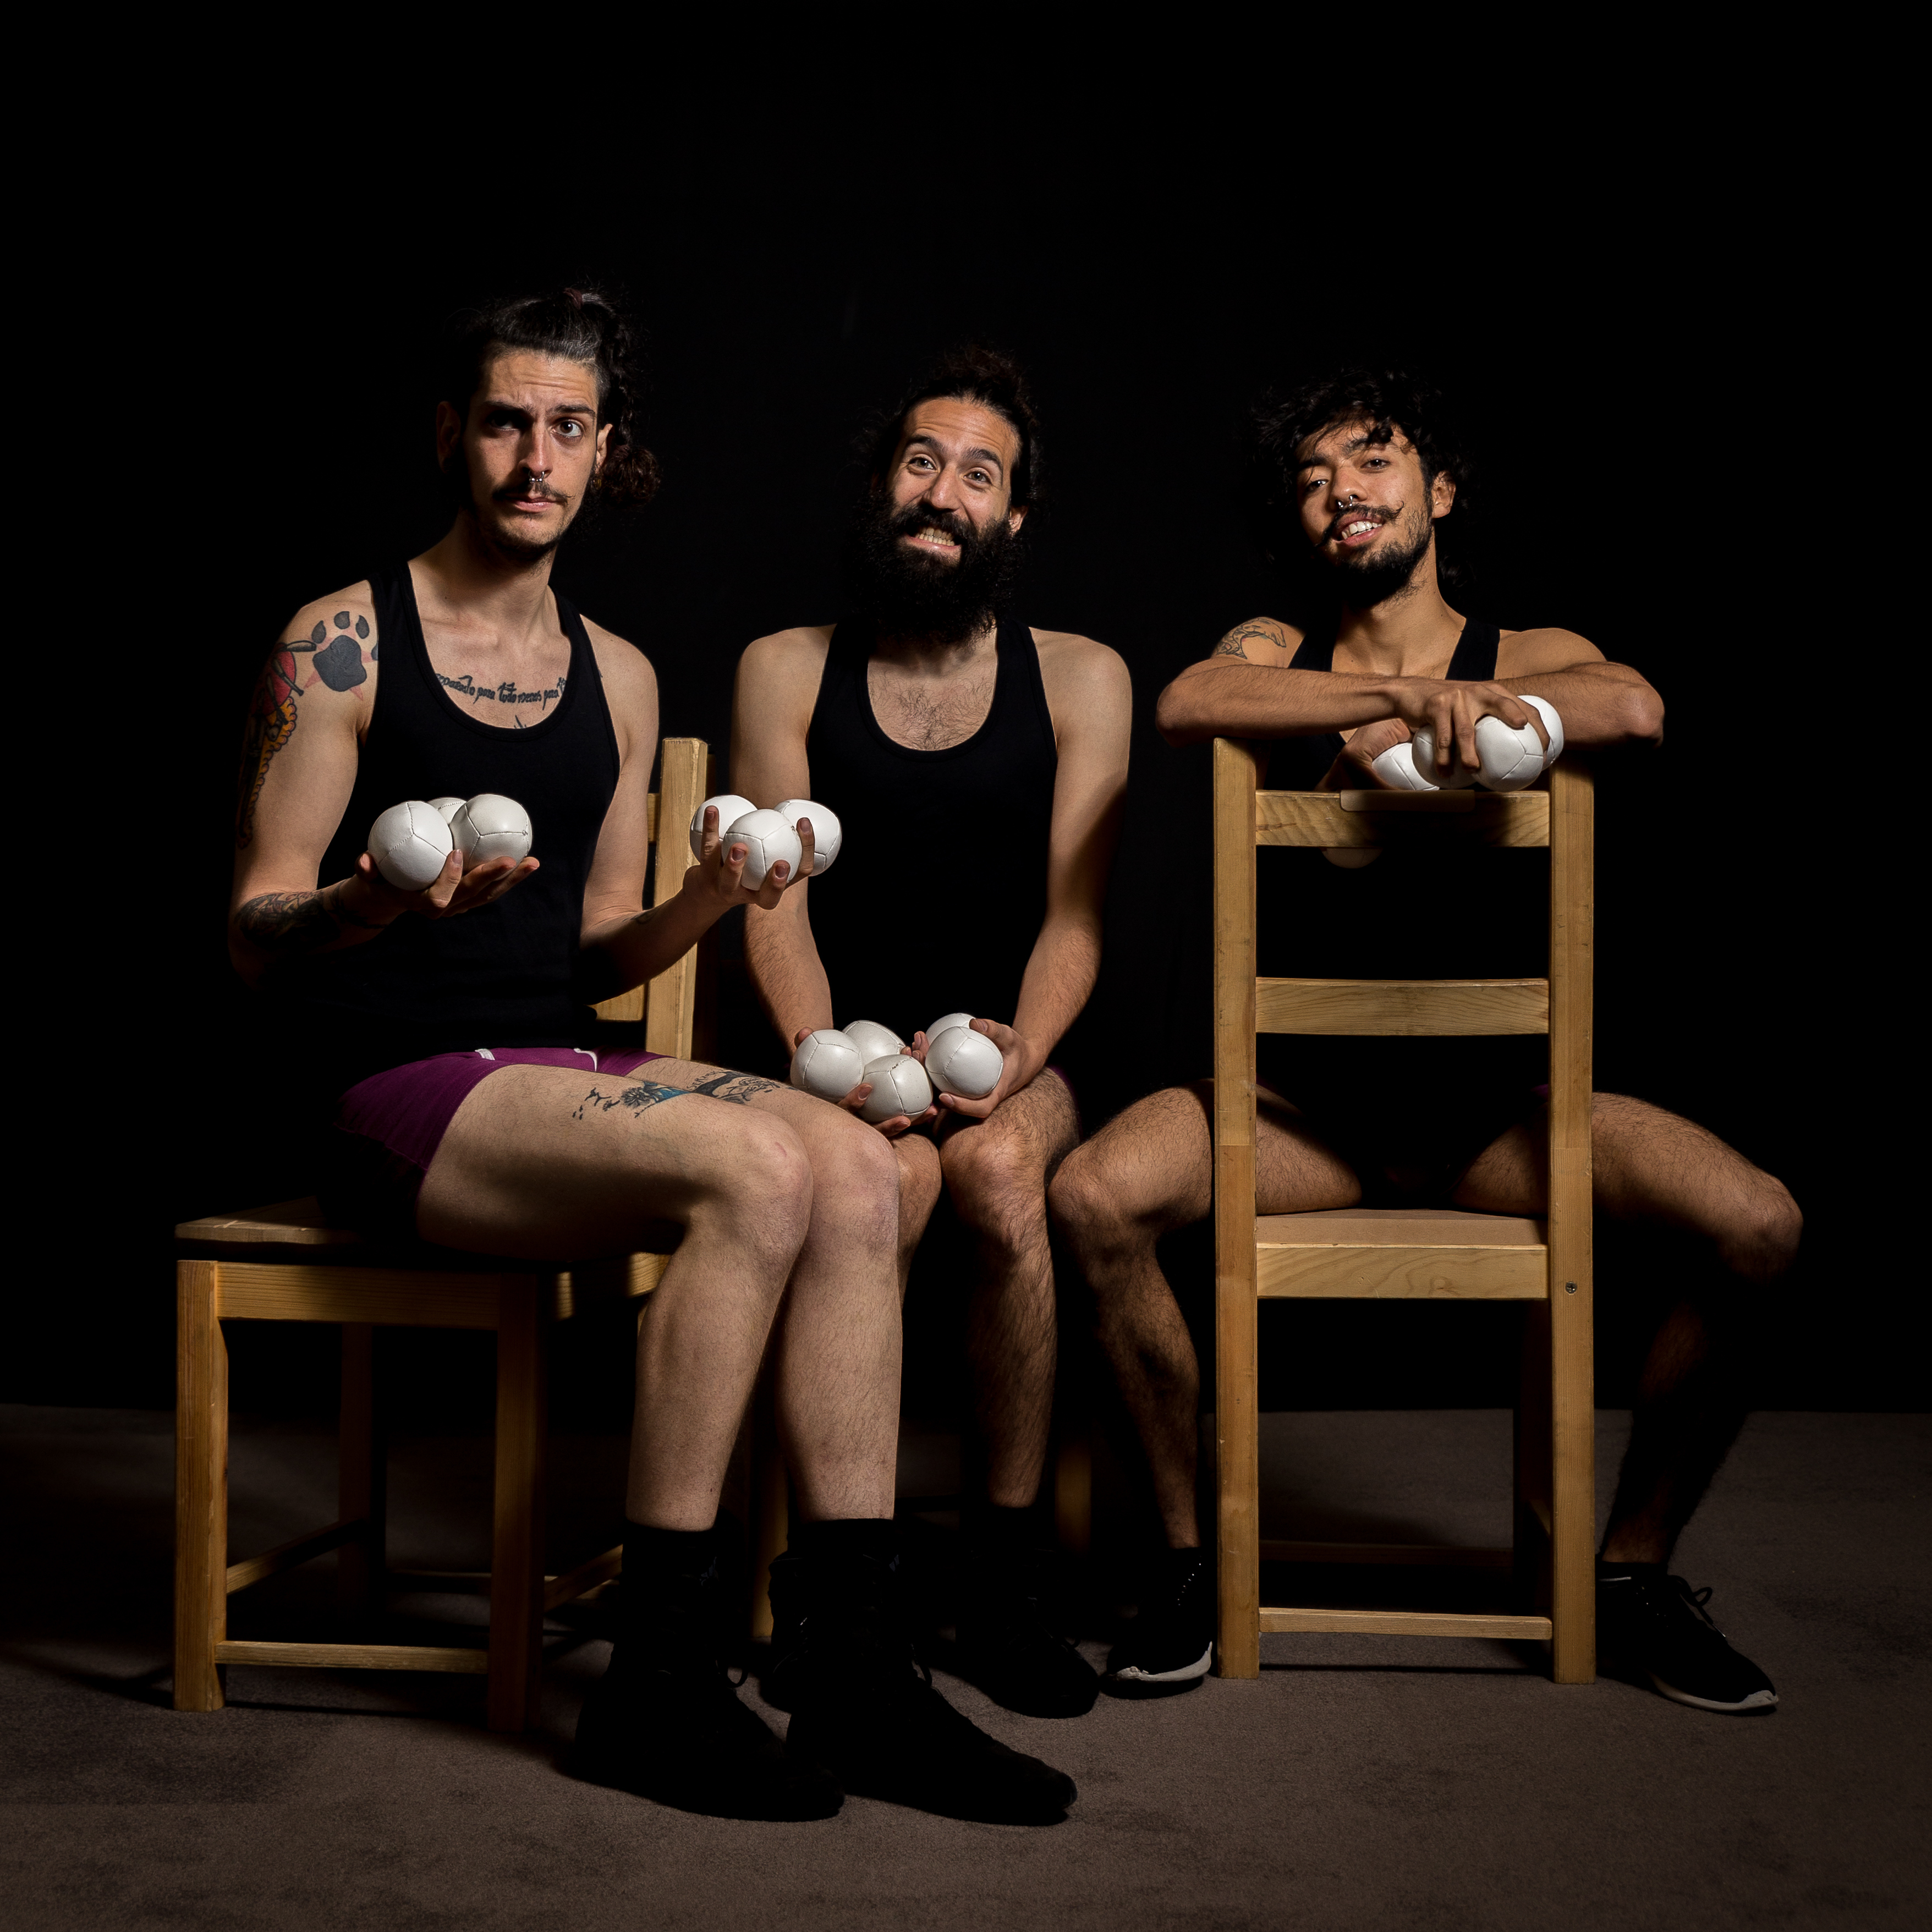 3 circus performers sit in chairs holding juggling balls in front of a black backdrop